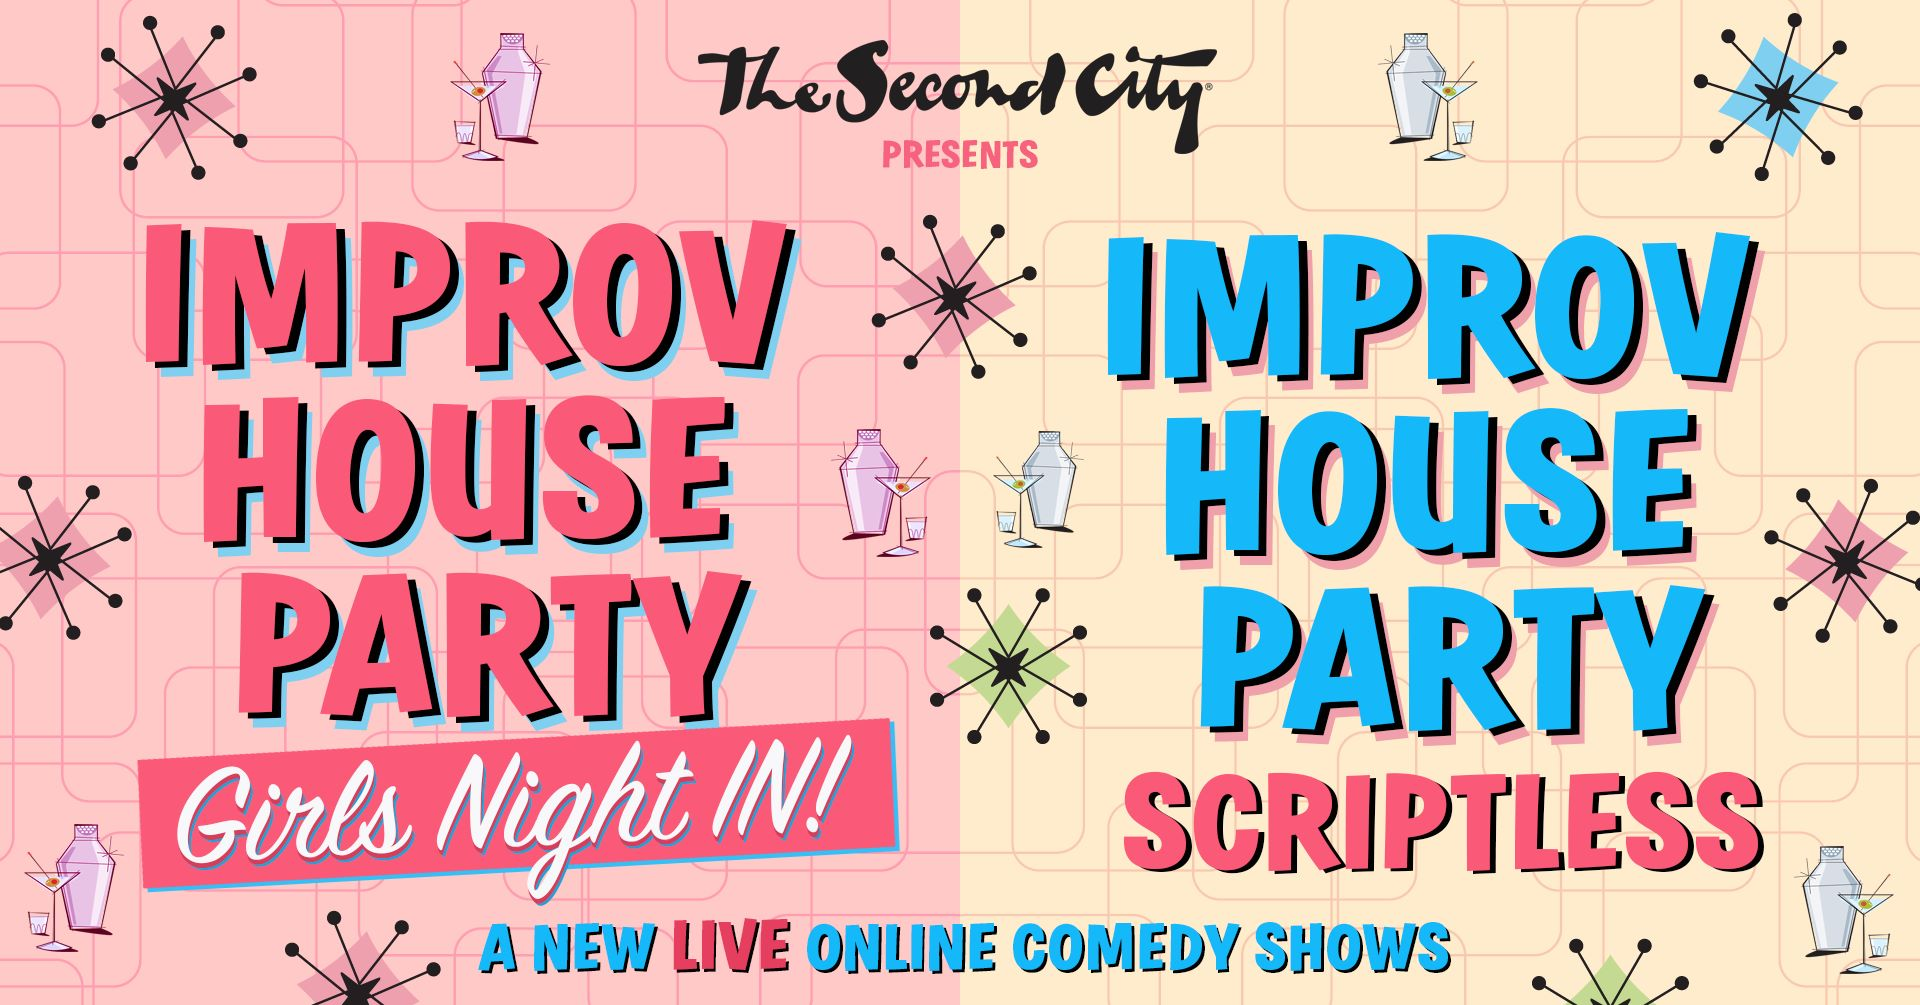 Second City's Improv House Party 1